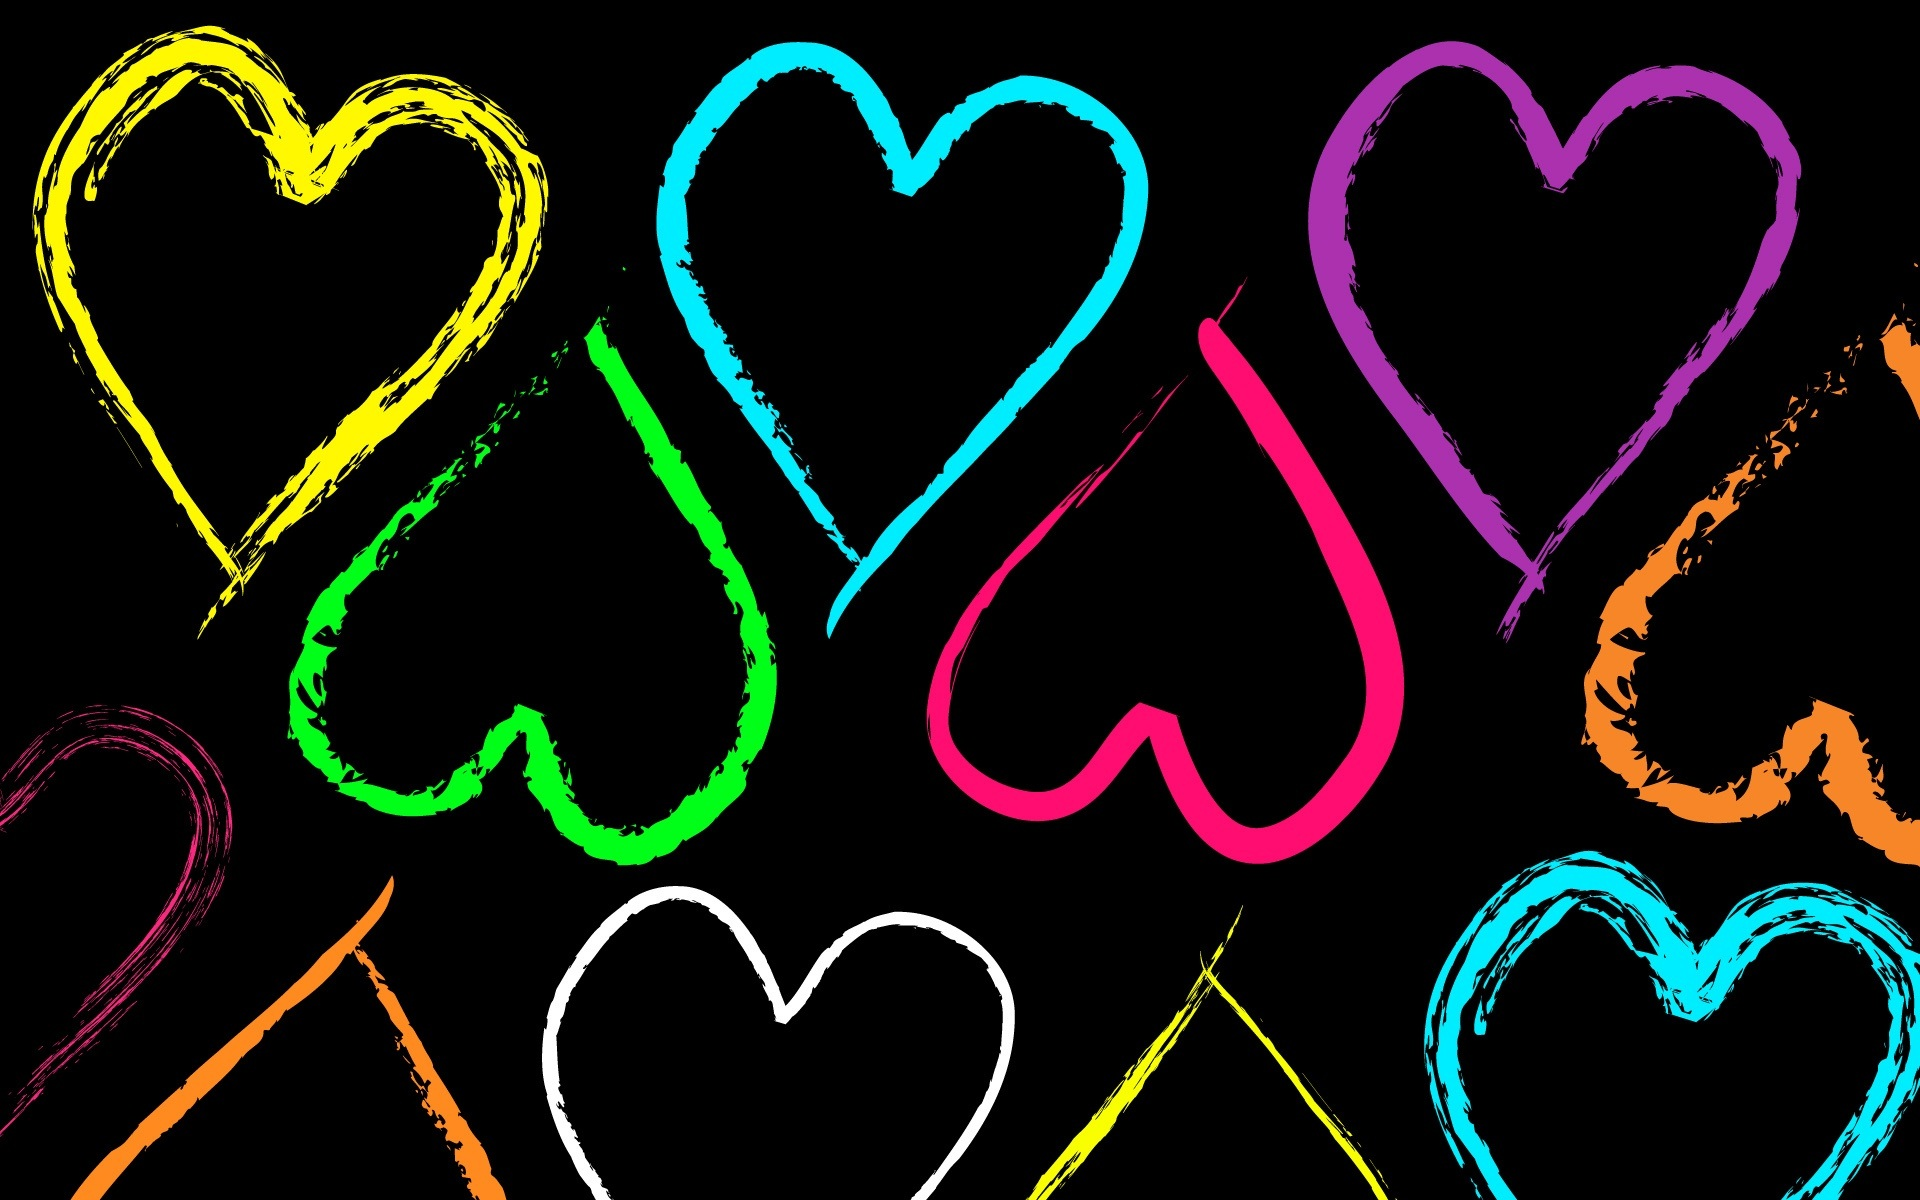 Wallpaper Colorful Heart Shaped Love 1920x1200 HD Picture Image